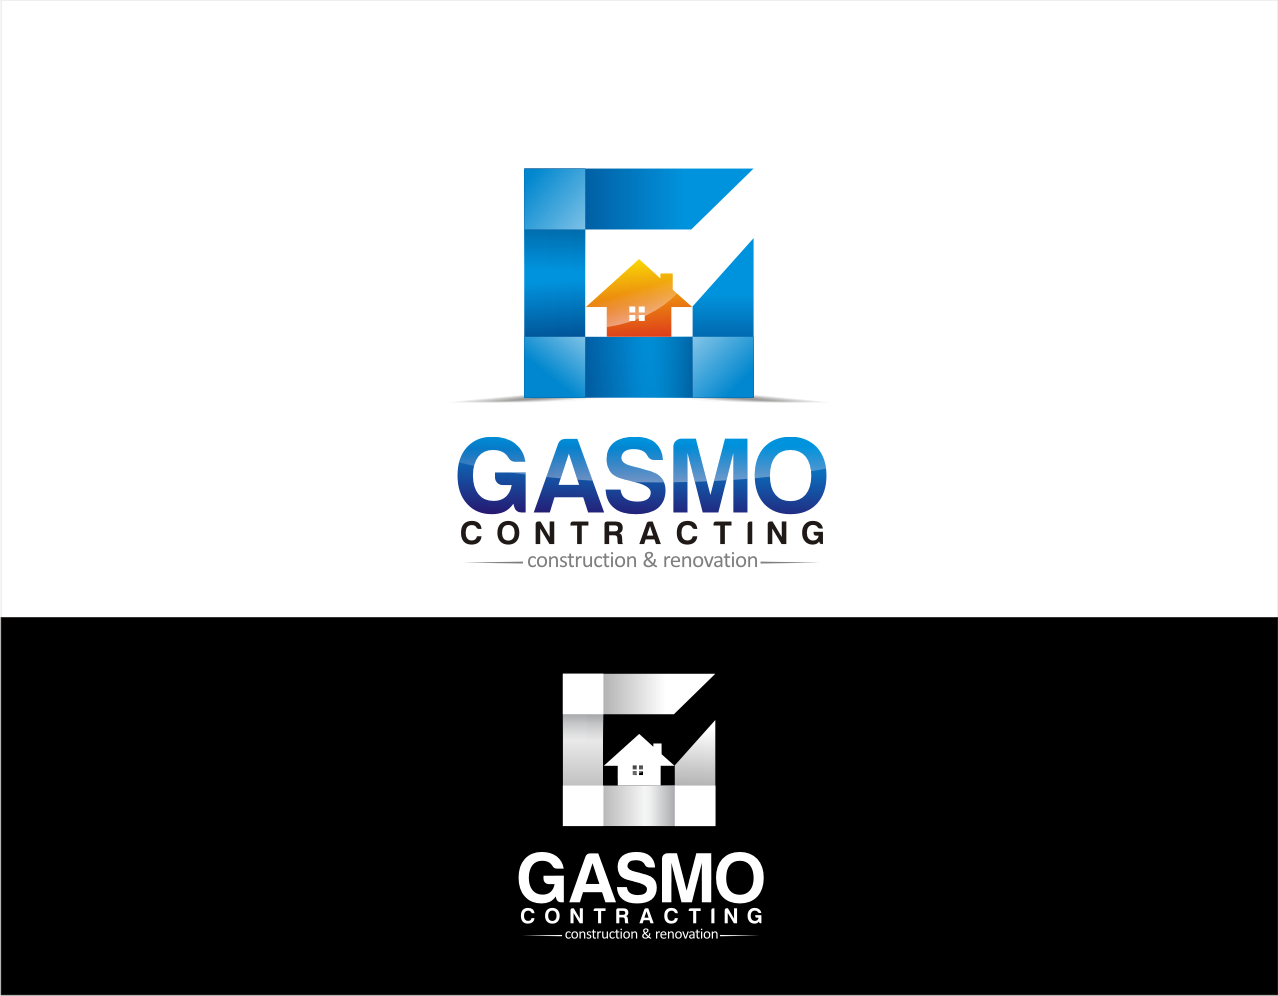 Logo Design by walangsangit - Entry No. 30 in the Logo Design Contest Professional Logo Design for Gasmo Contracting.